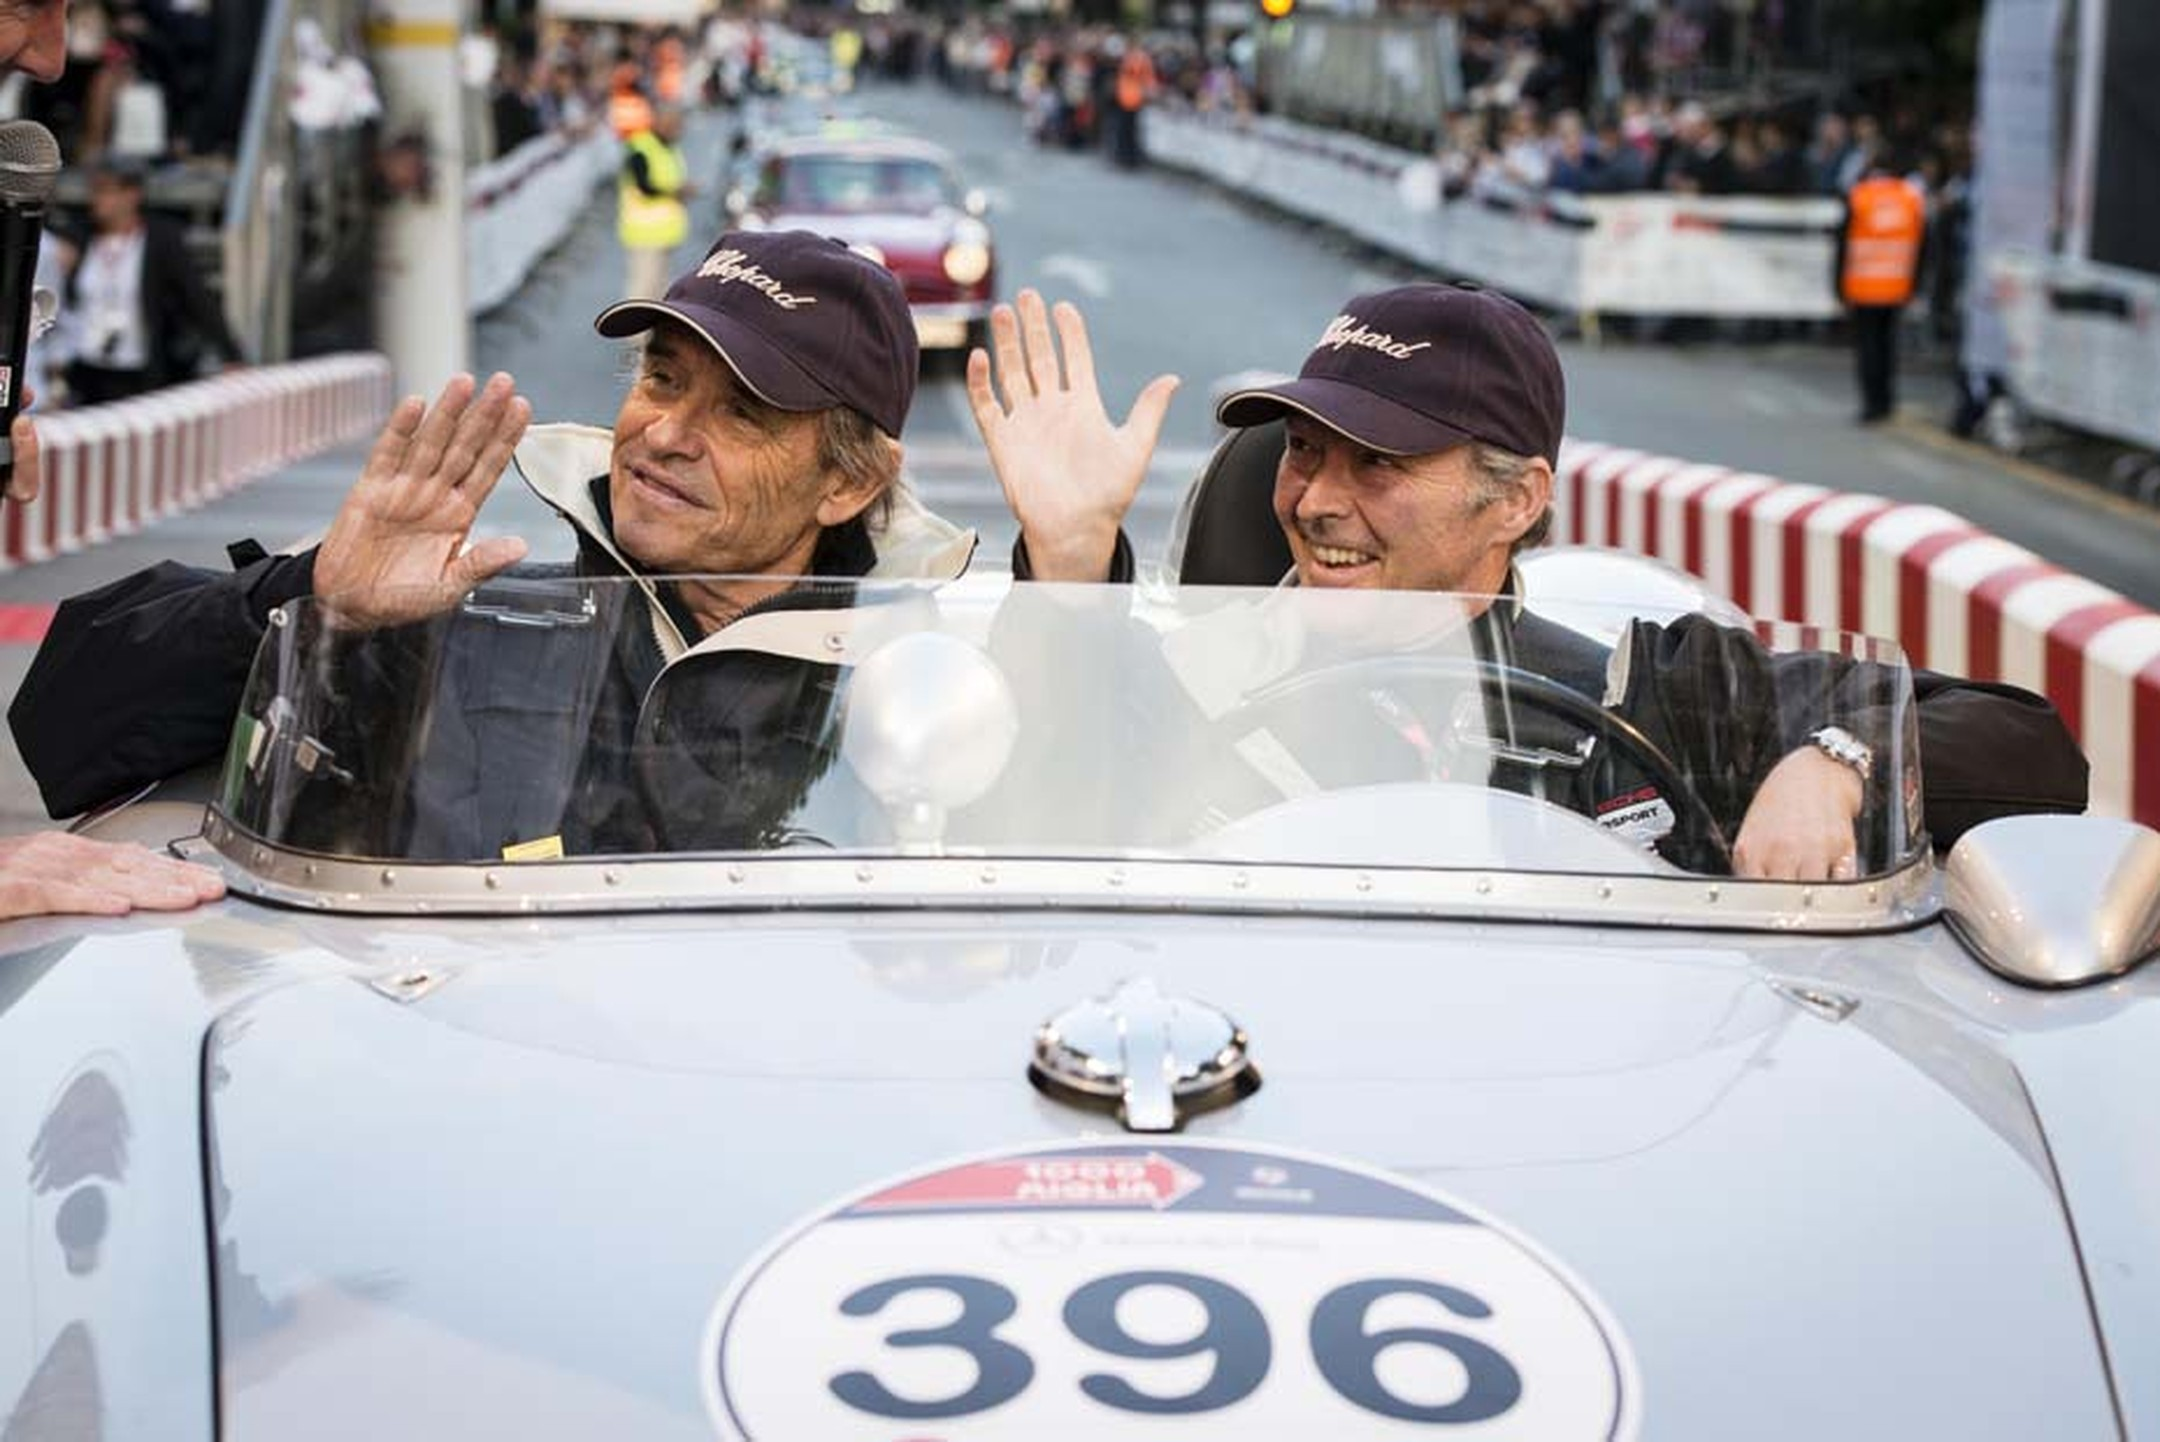 This year, owner of Chopard, Karl Scheufele III, and his good friend, the racing car phenomenon Jacky Ickx, took turns at the wheel of a Porsche 550A Spyder RS during the Mille Miglia.